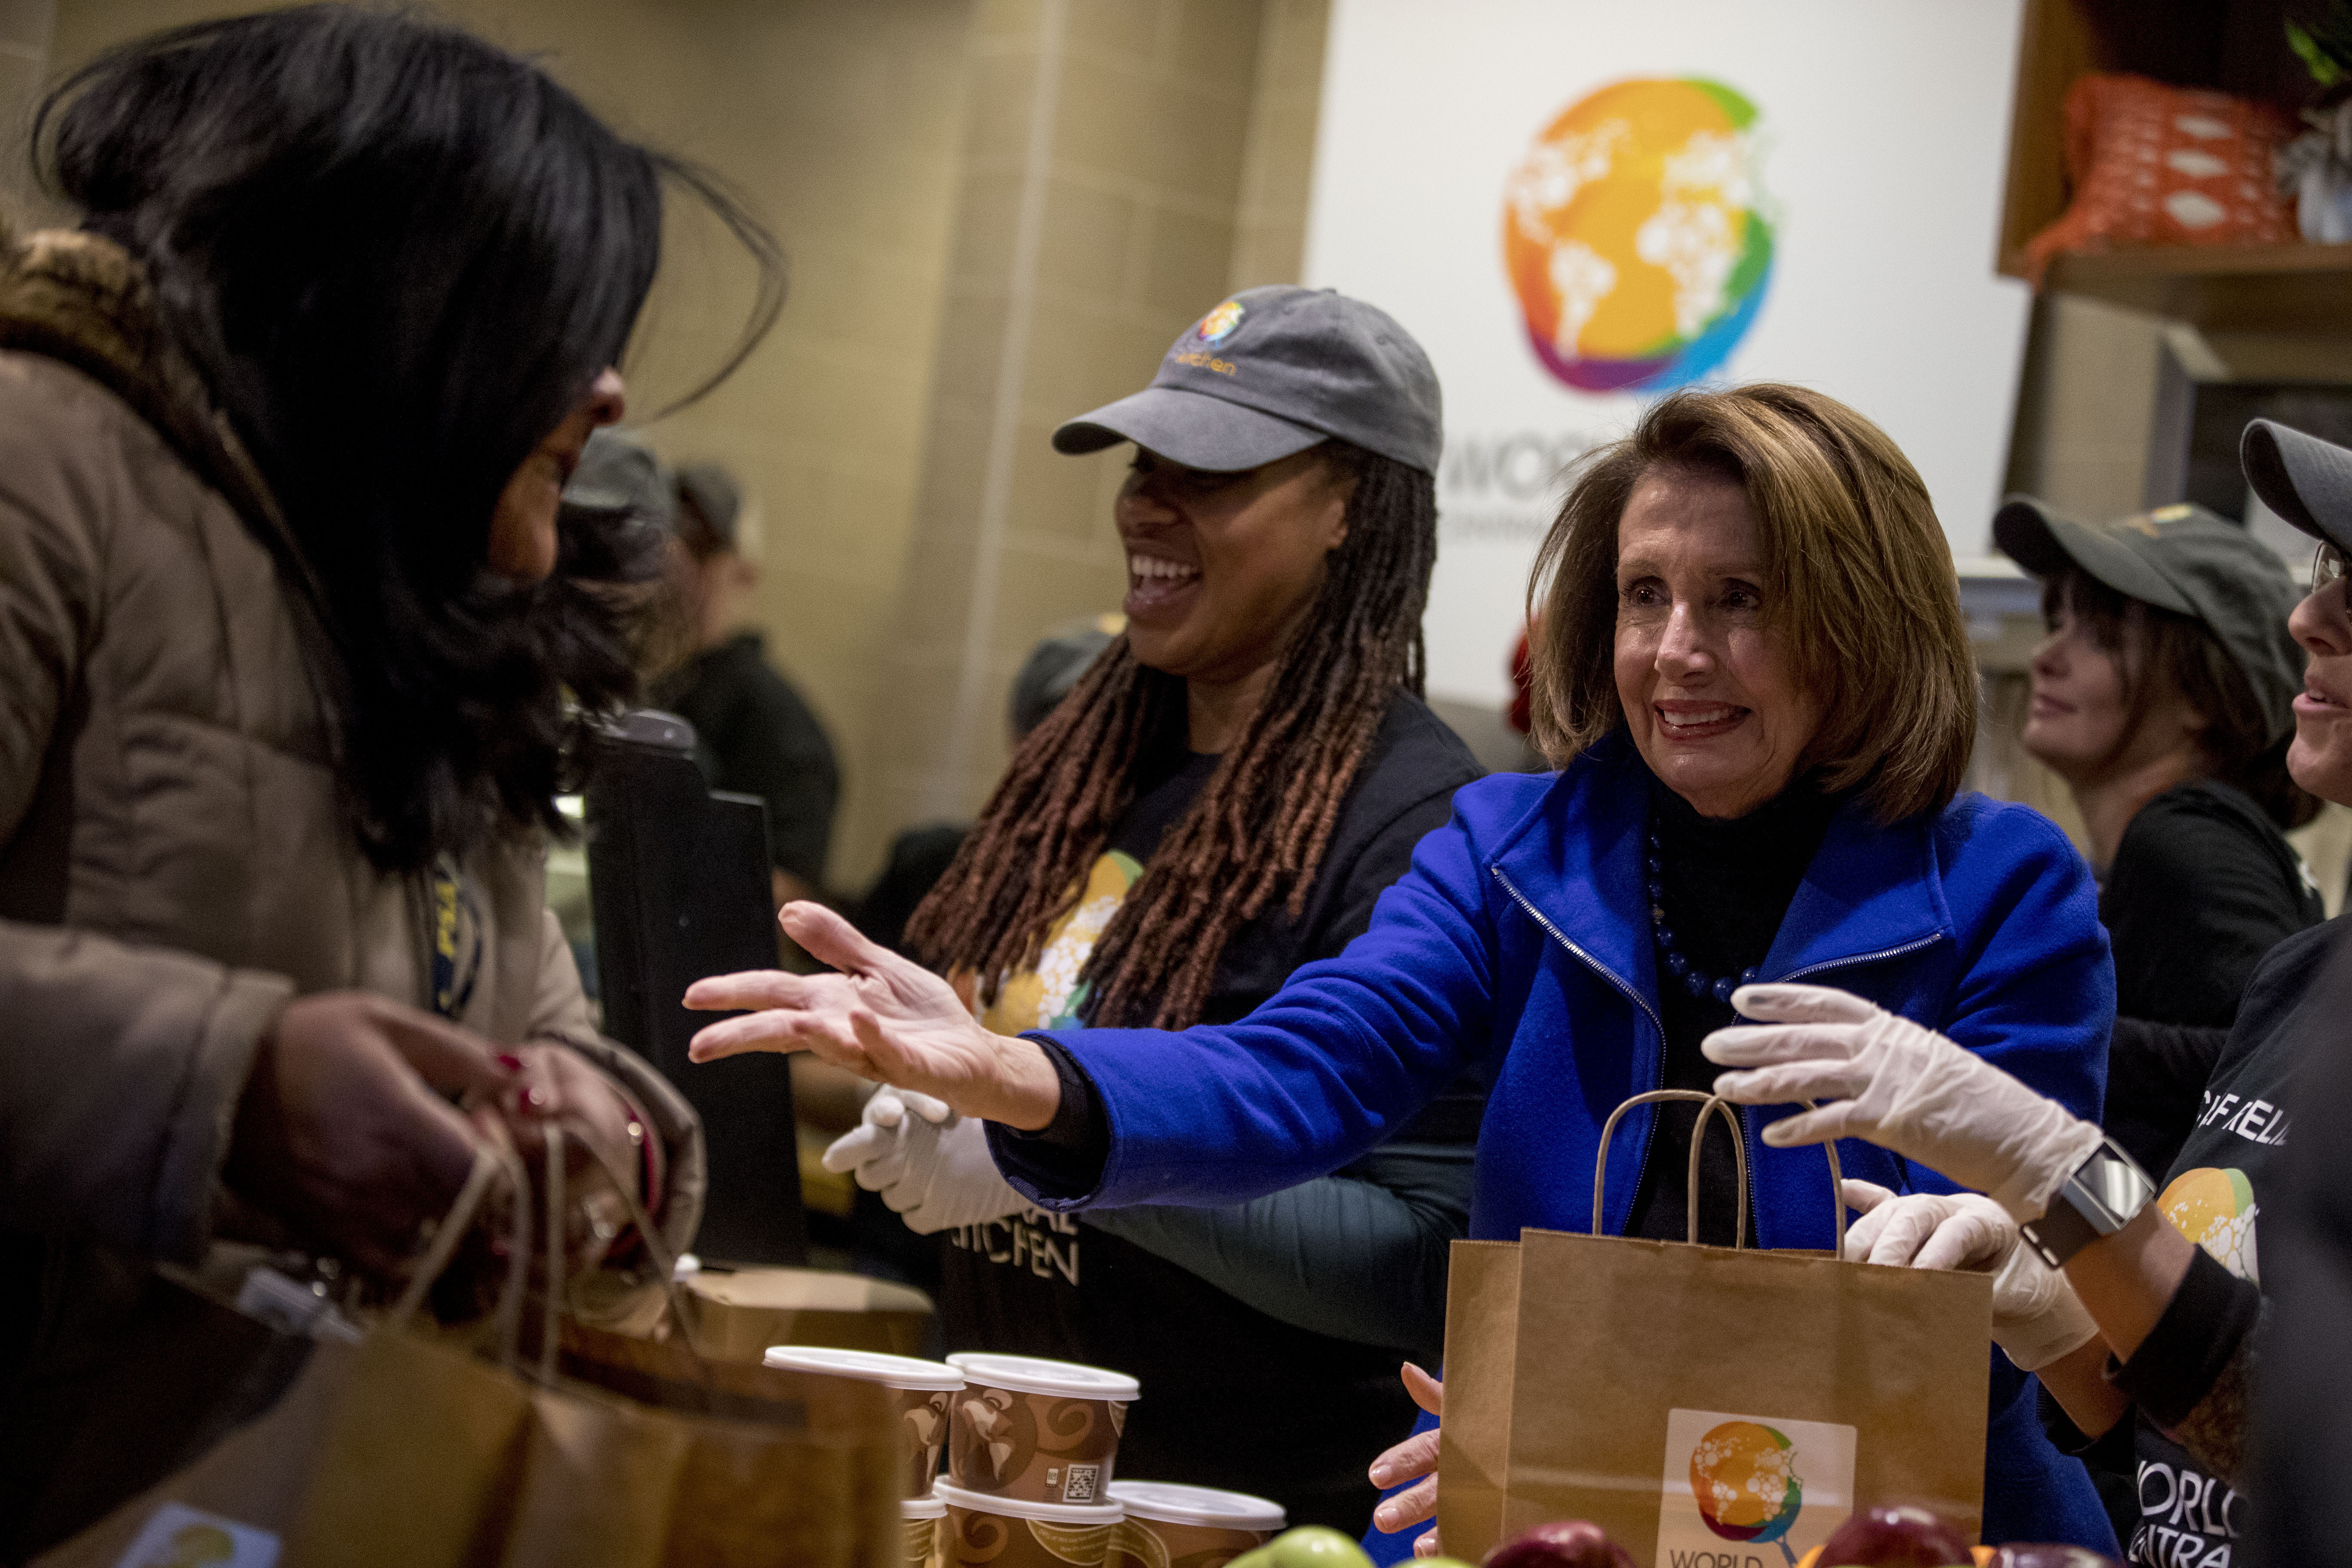 House Speaker Nancy Pelosi of California, center, helps give out food at World Central Kitchen, the not-for-profit organization started by Chef Jose Andres  Jan. 22, 2019, in Washington.